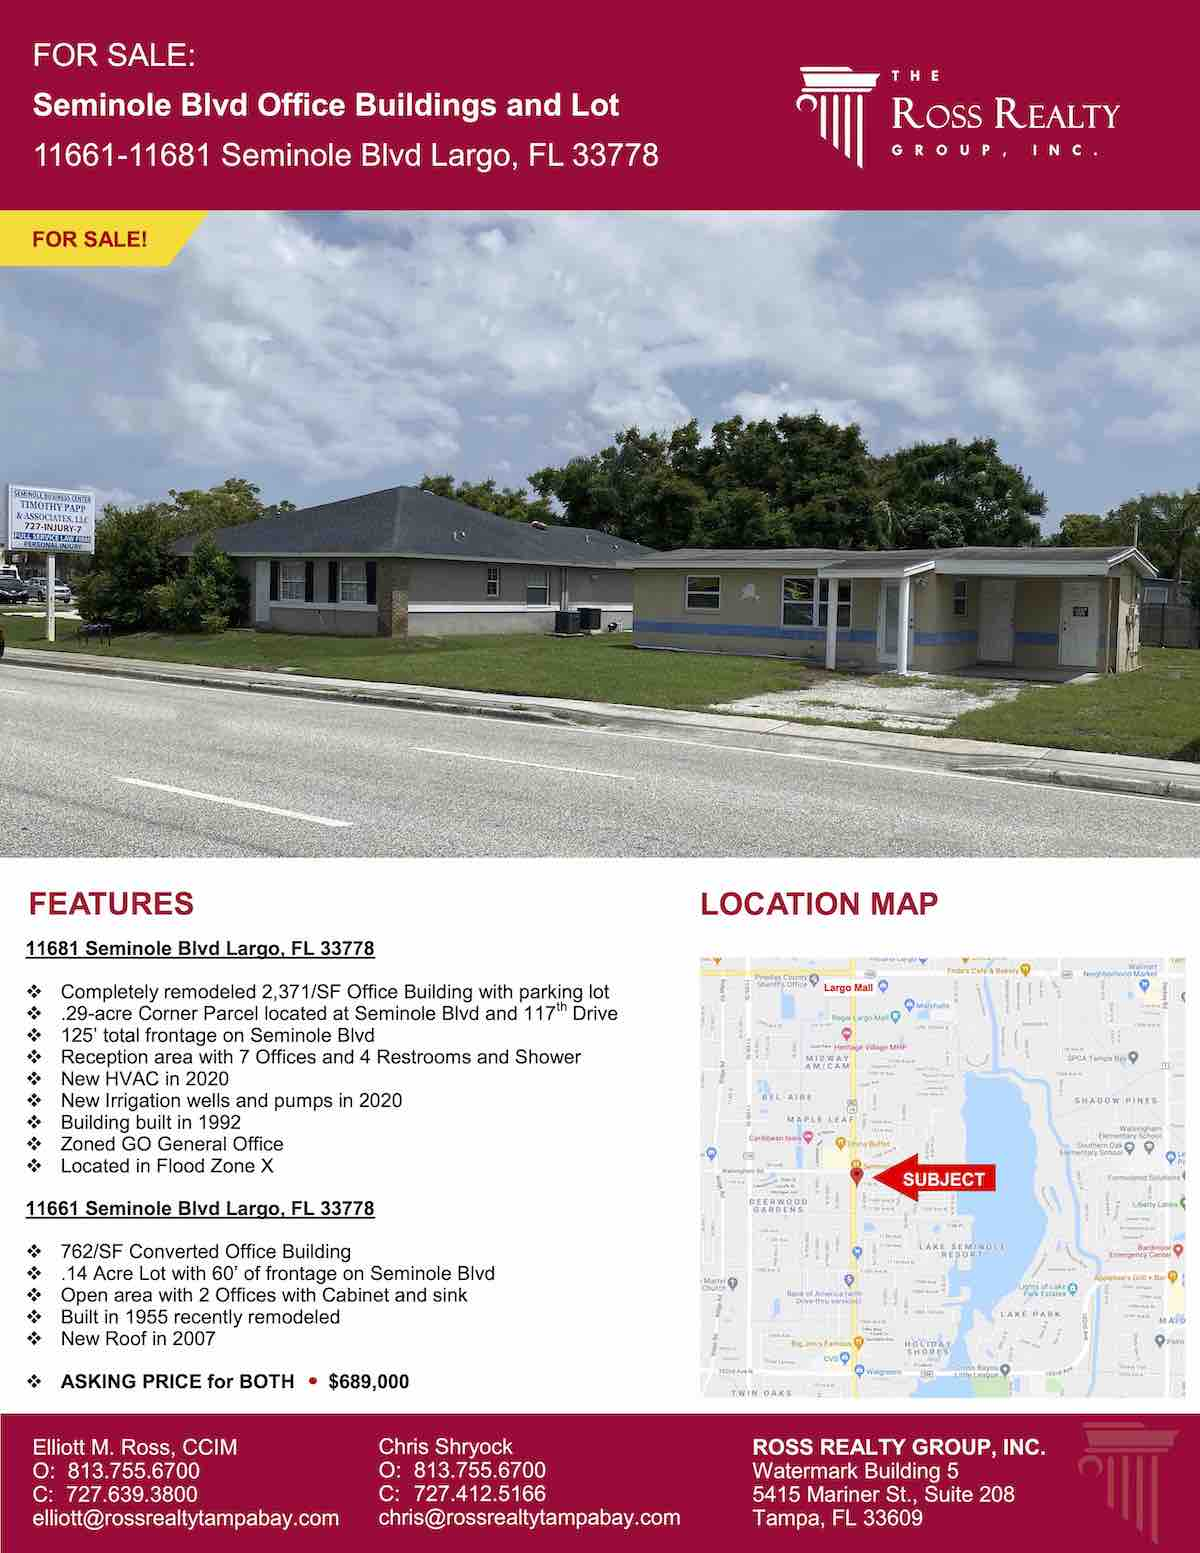 Tampa Commercial Real Estate - FOR SALE - Seminole Blvd Office Buildings and Lot - 11661-11681 Seminole Blvd Largo, FL 33778 P1